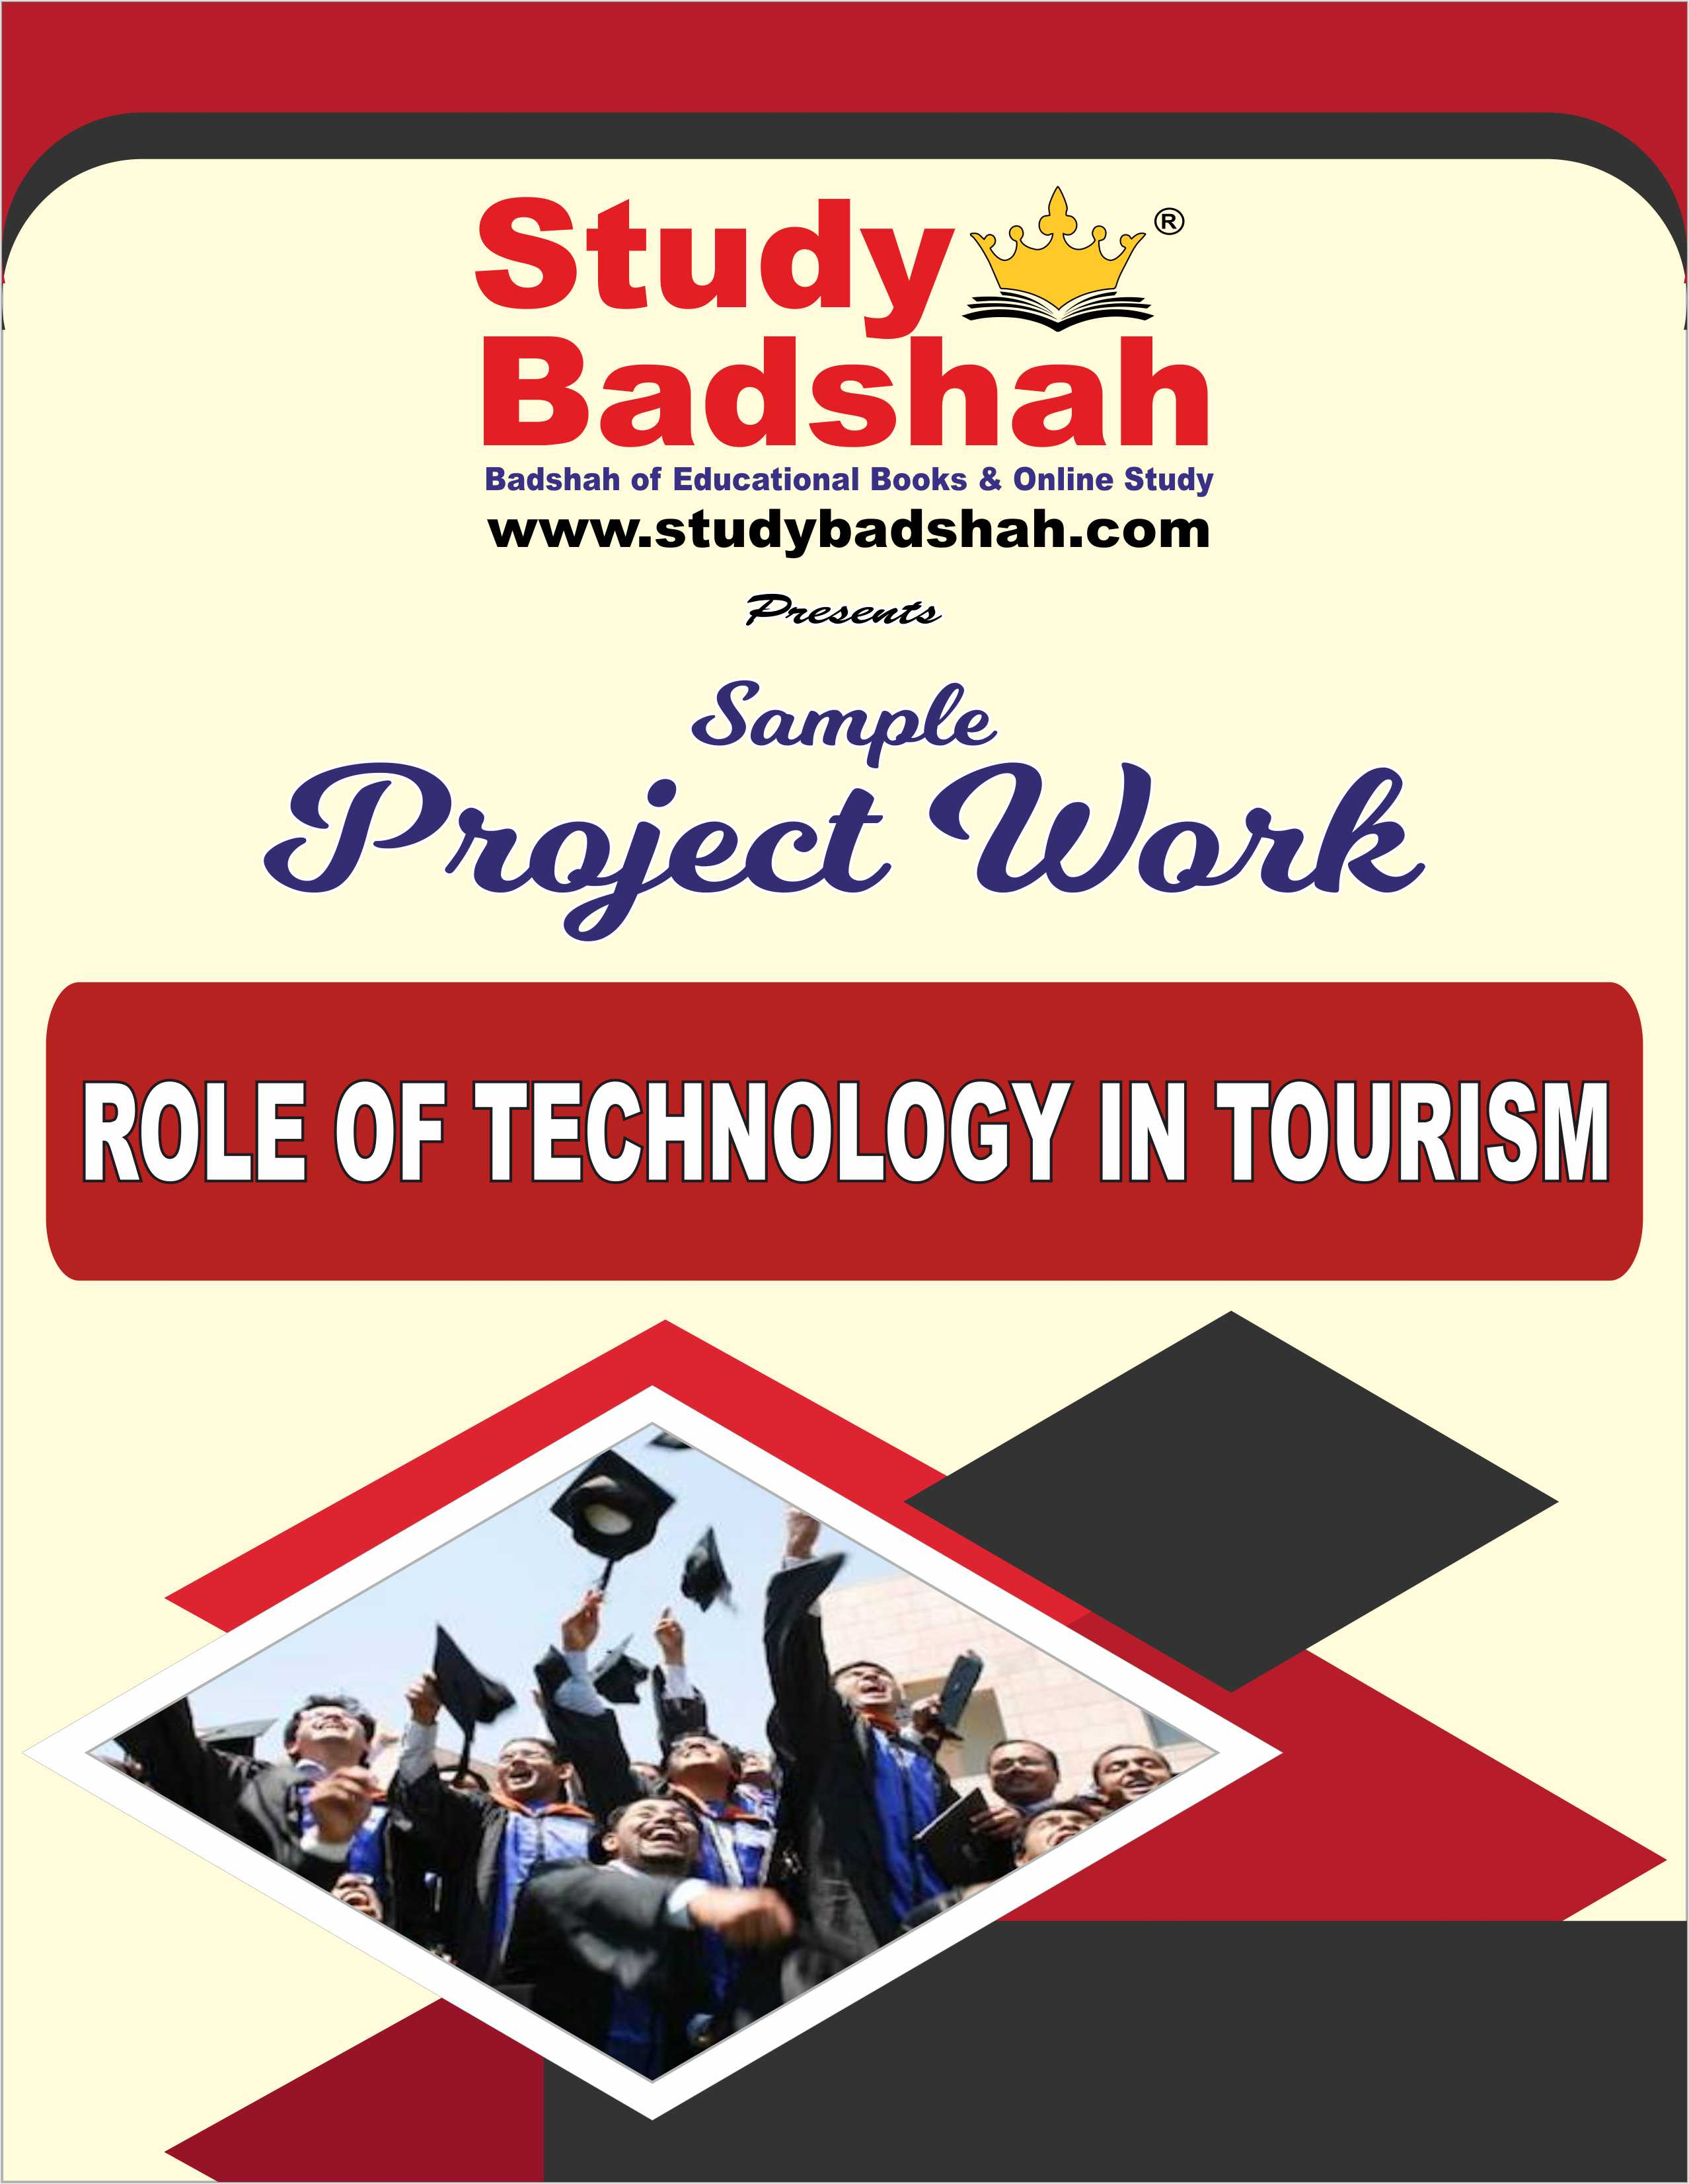 ROLE OF TECHNOLOGY IN TOURISM